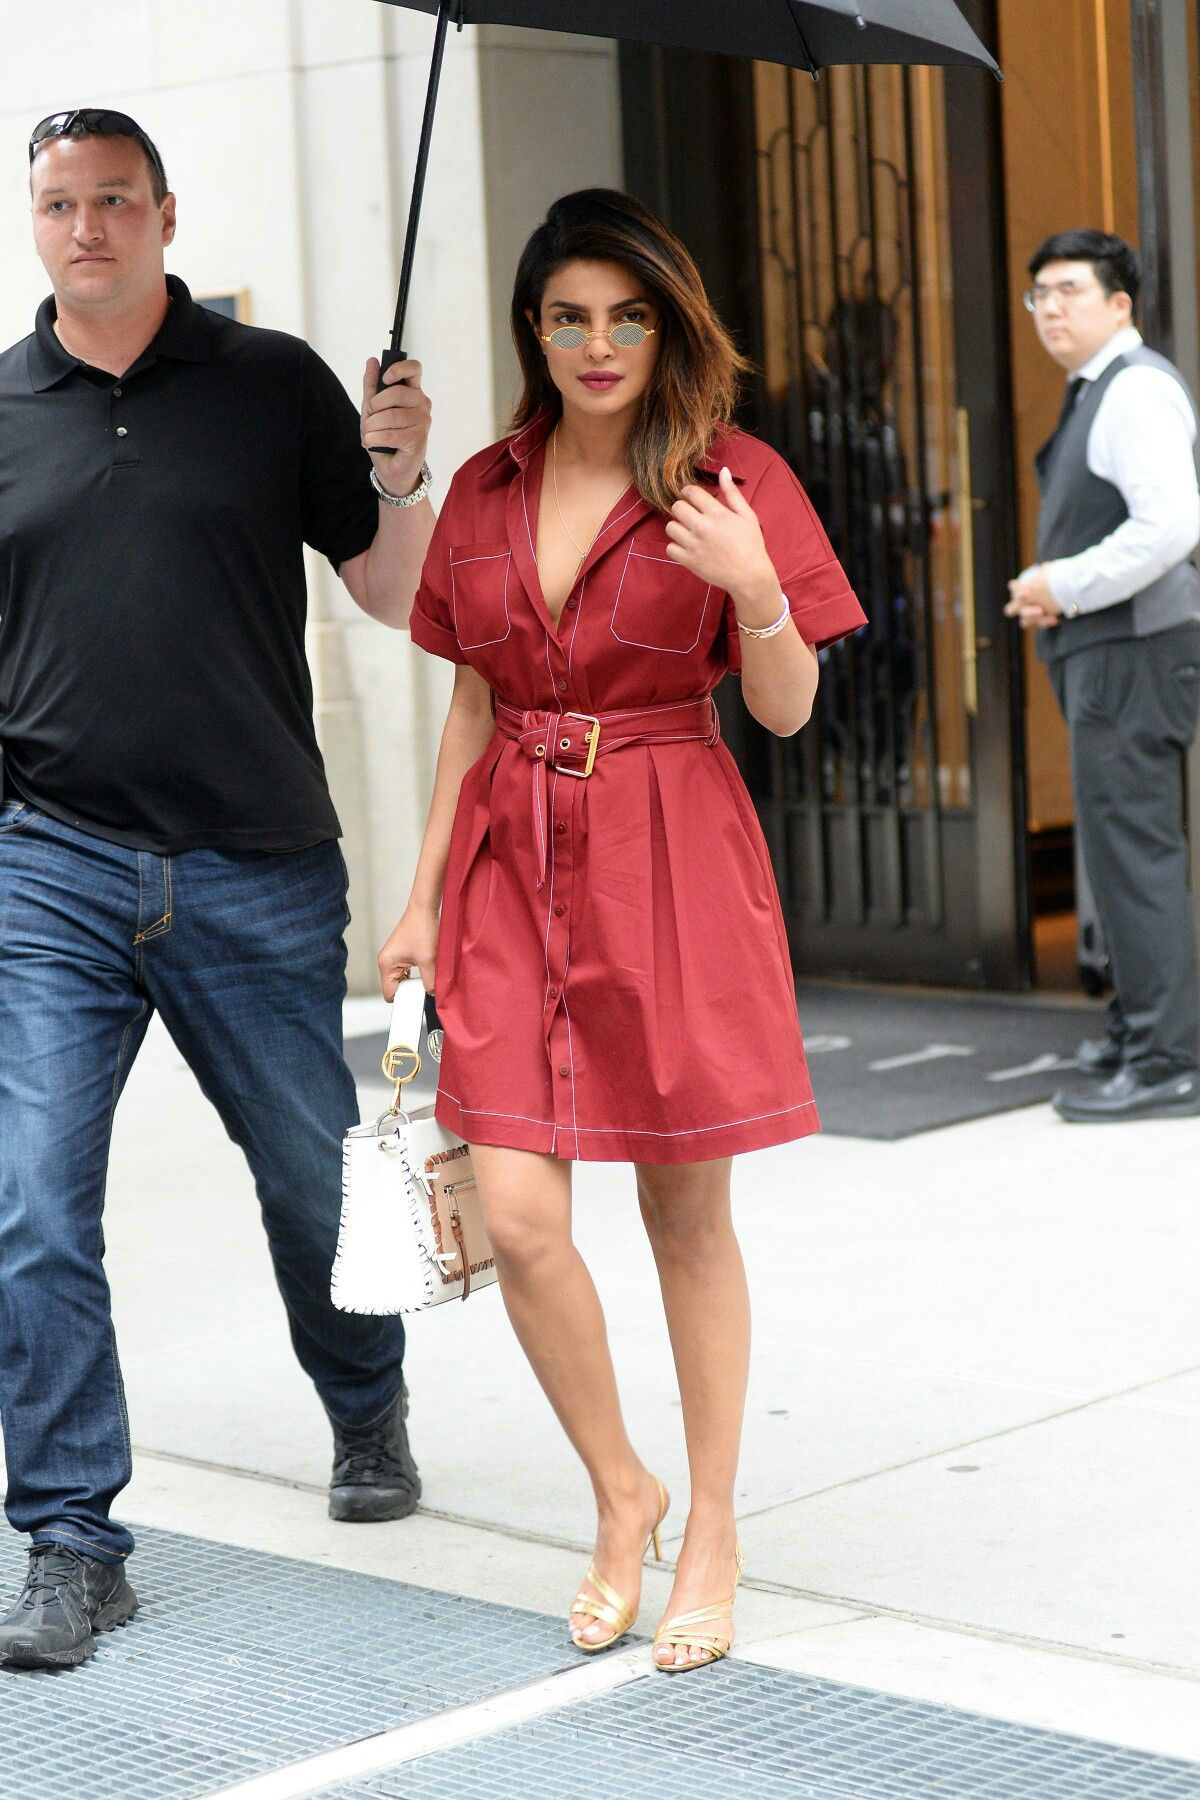 819ef2950d10 Pee cee in NYC for an event Priyanka Chopra Hot